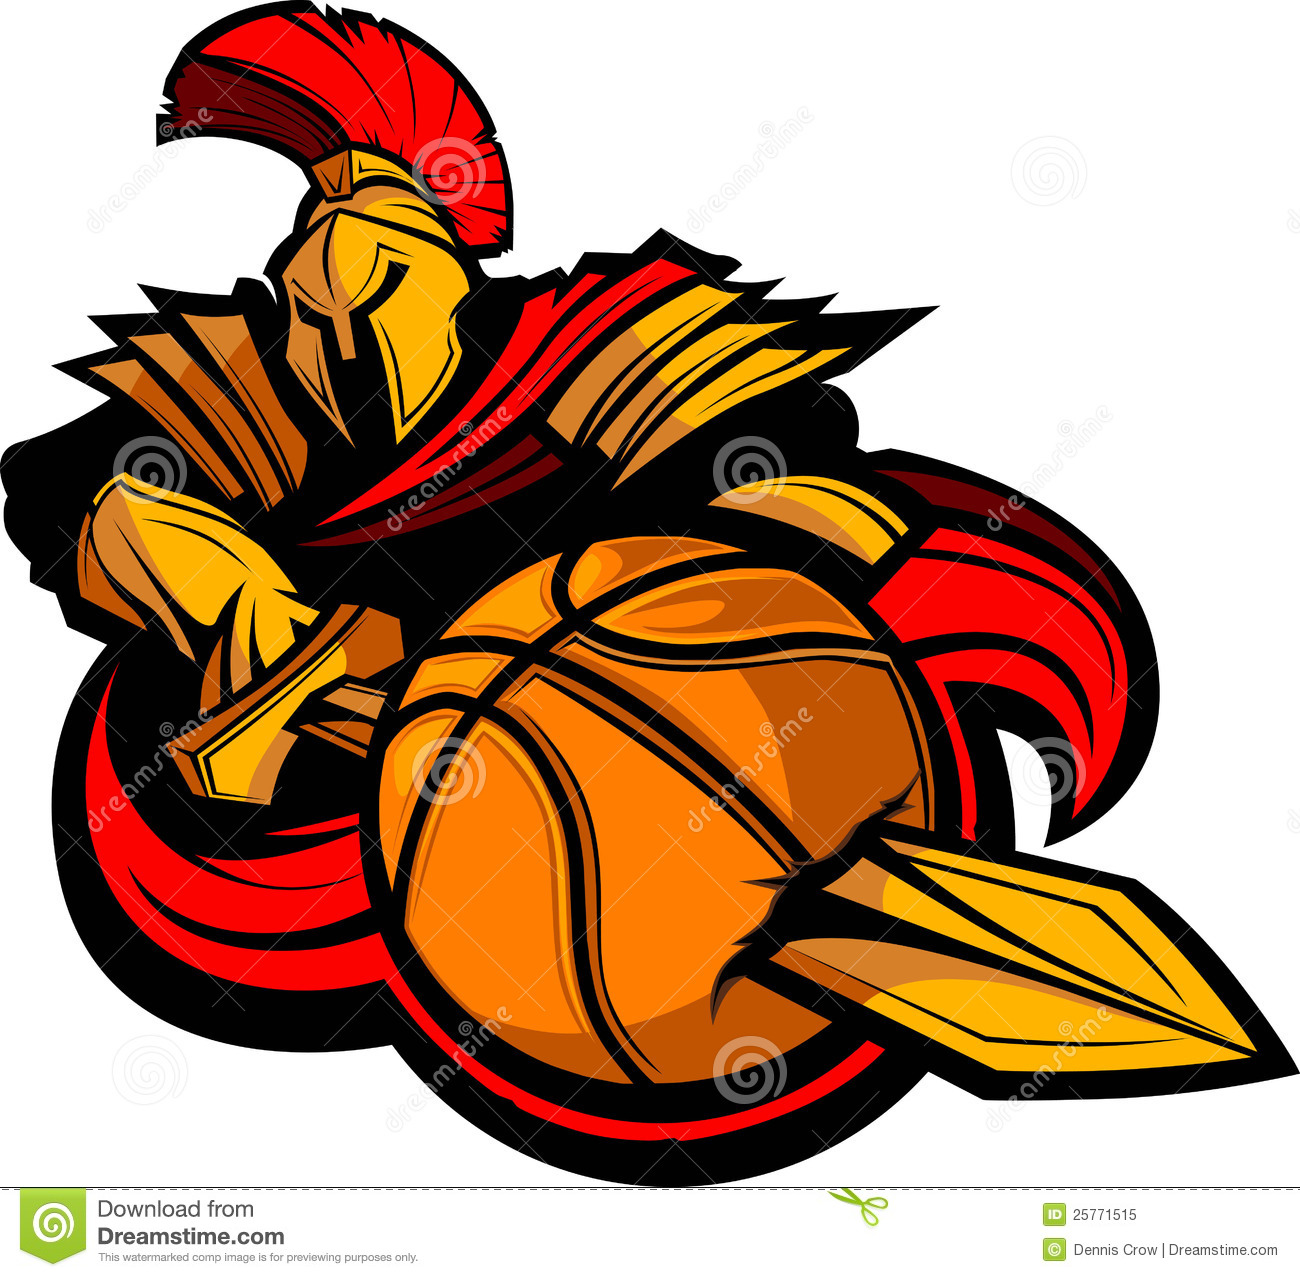 Spartan Basketball Illustration Royalty Free Stock Photo - Image ...